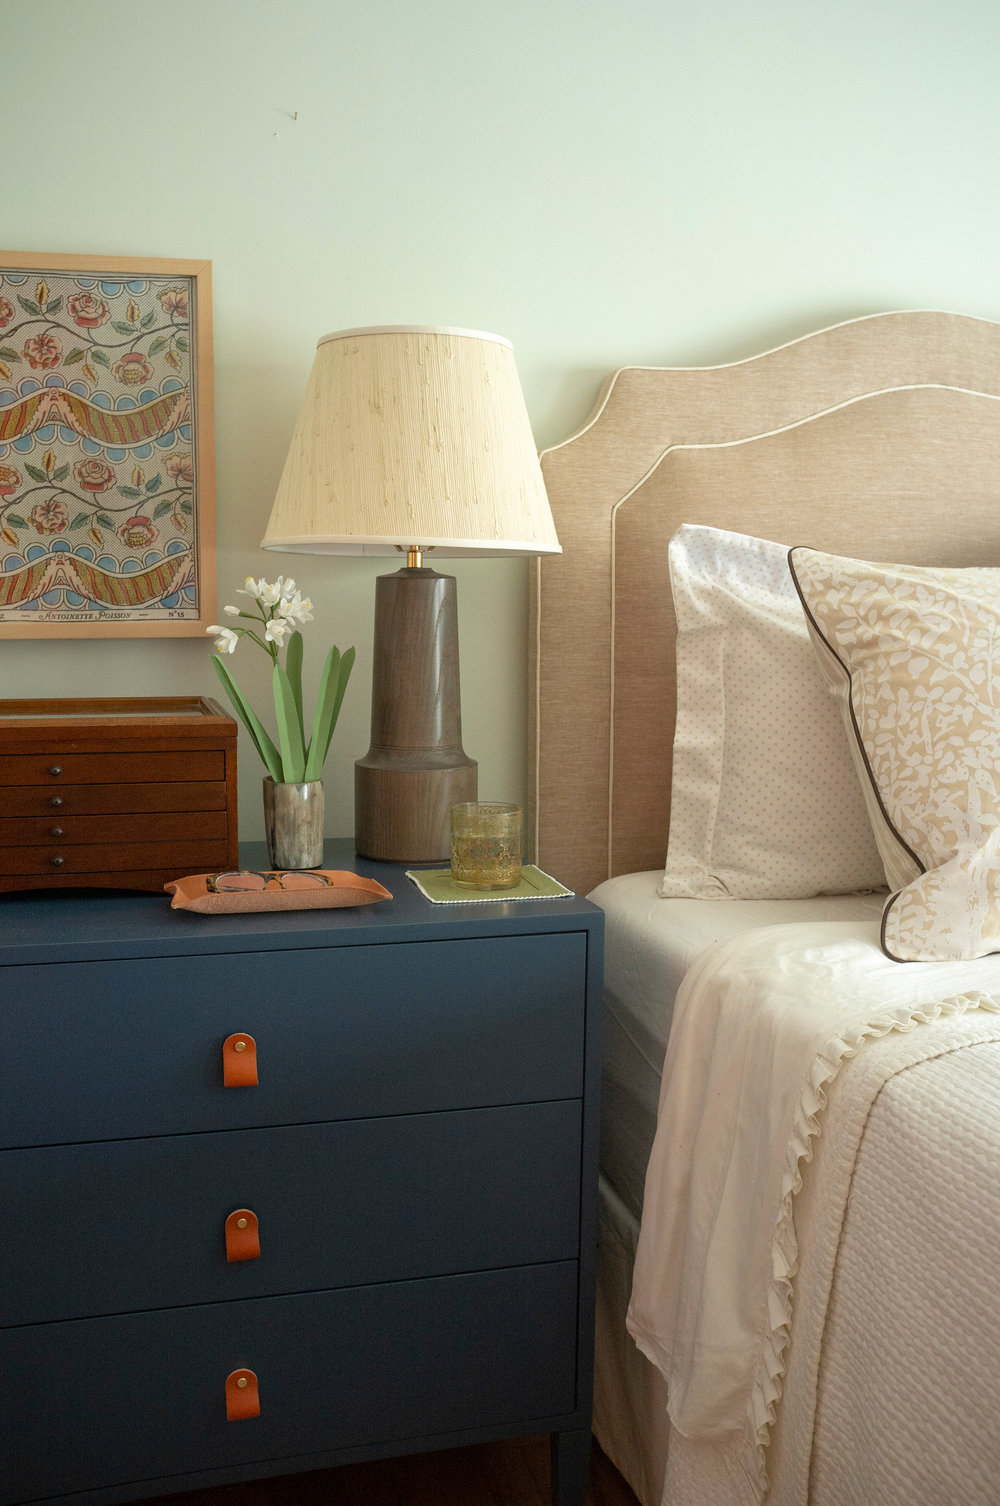 Barrow Bedside Table - Large, Oxford Blue Paint